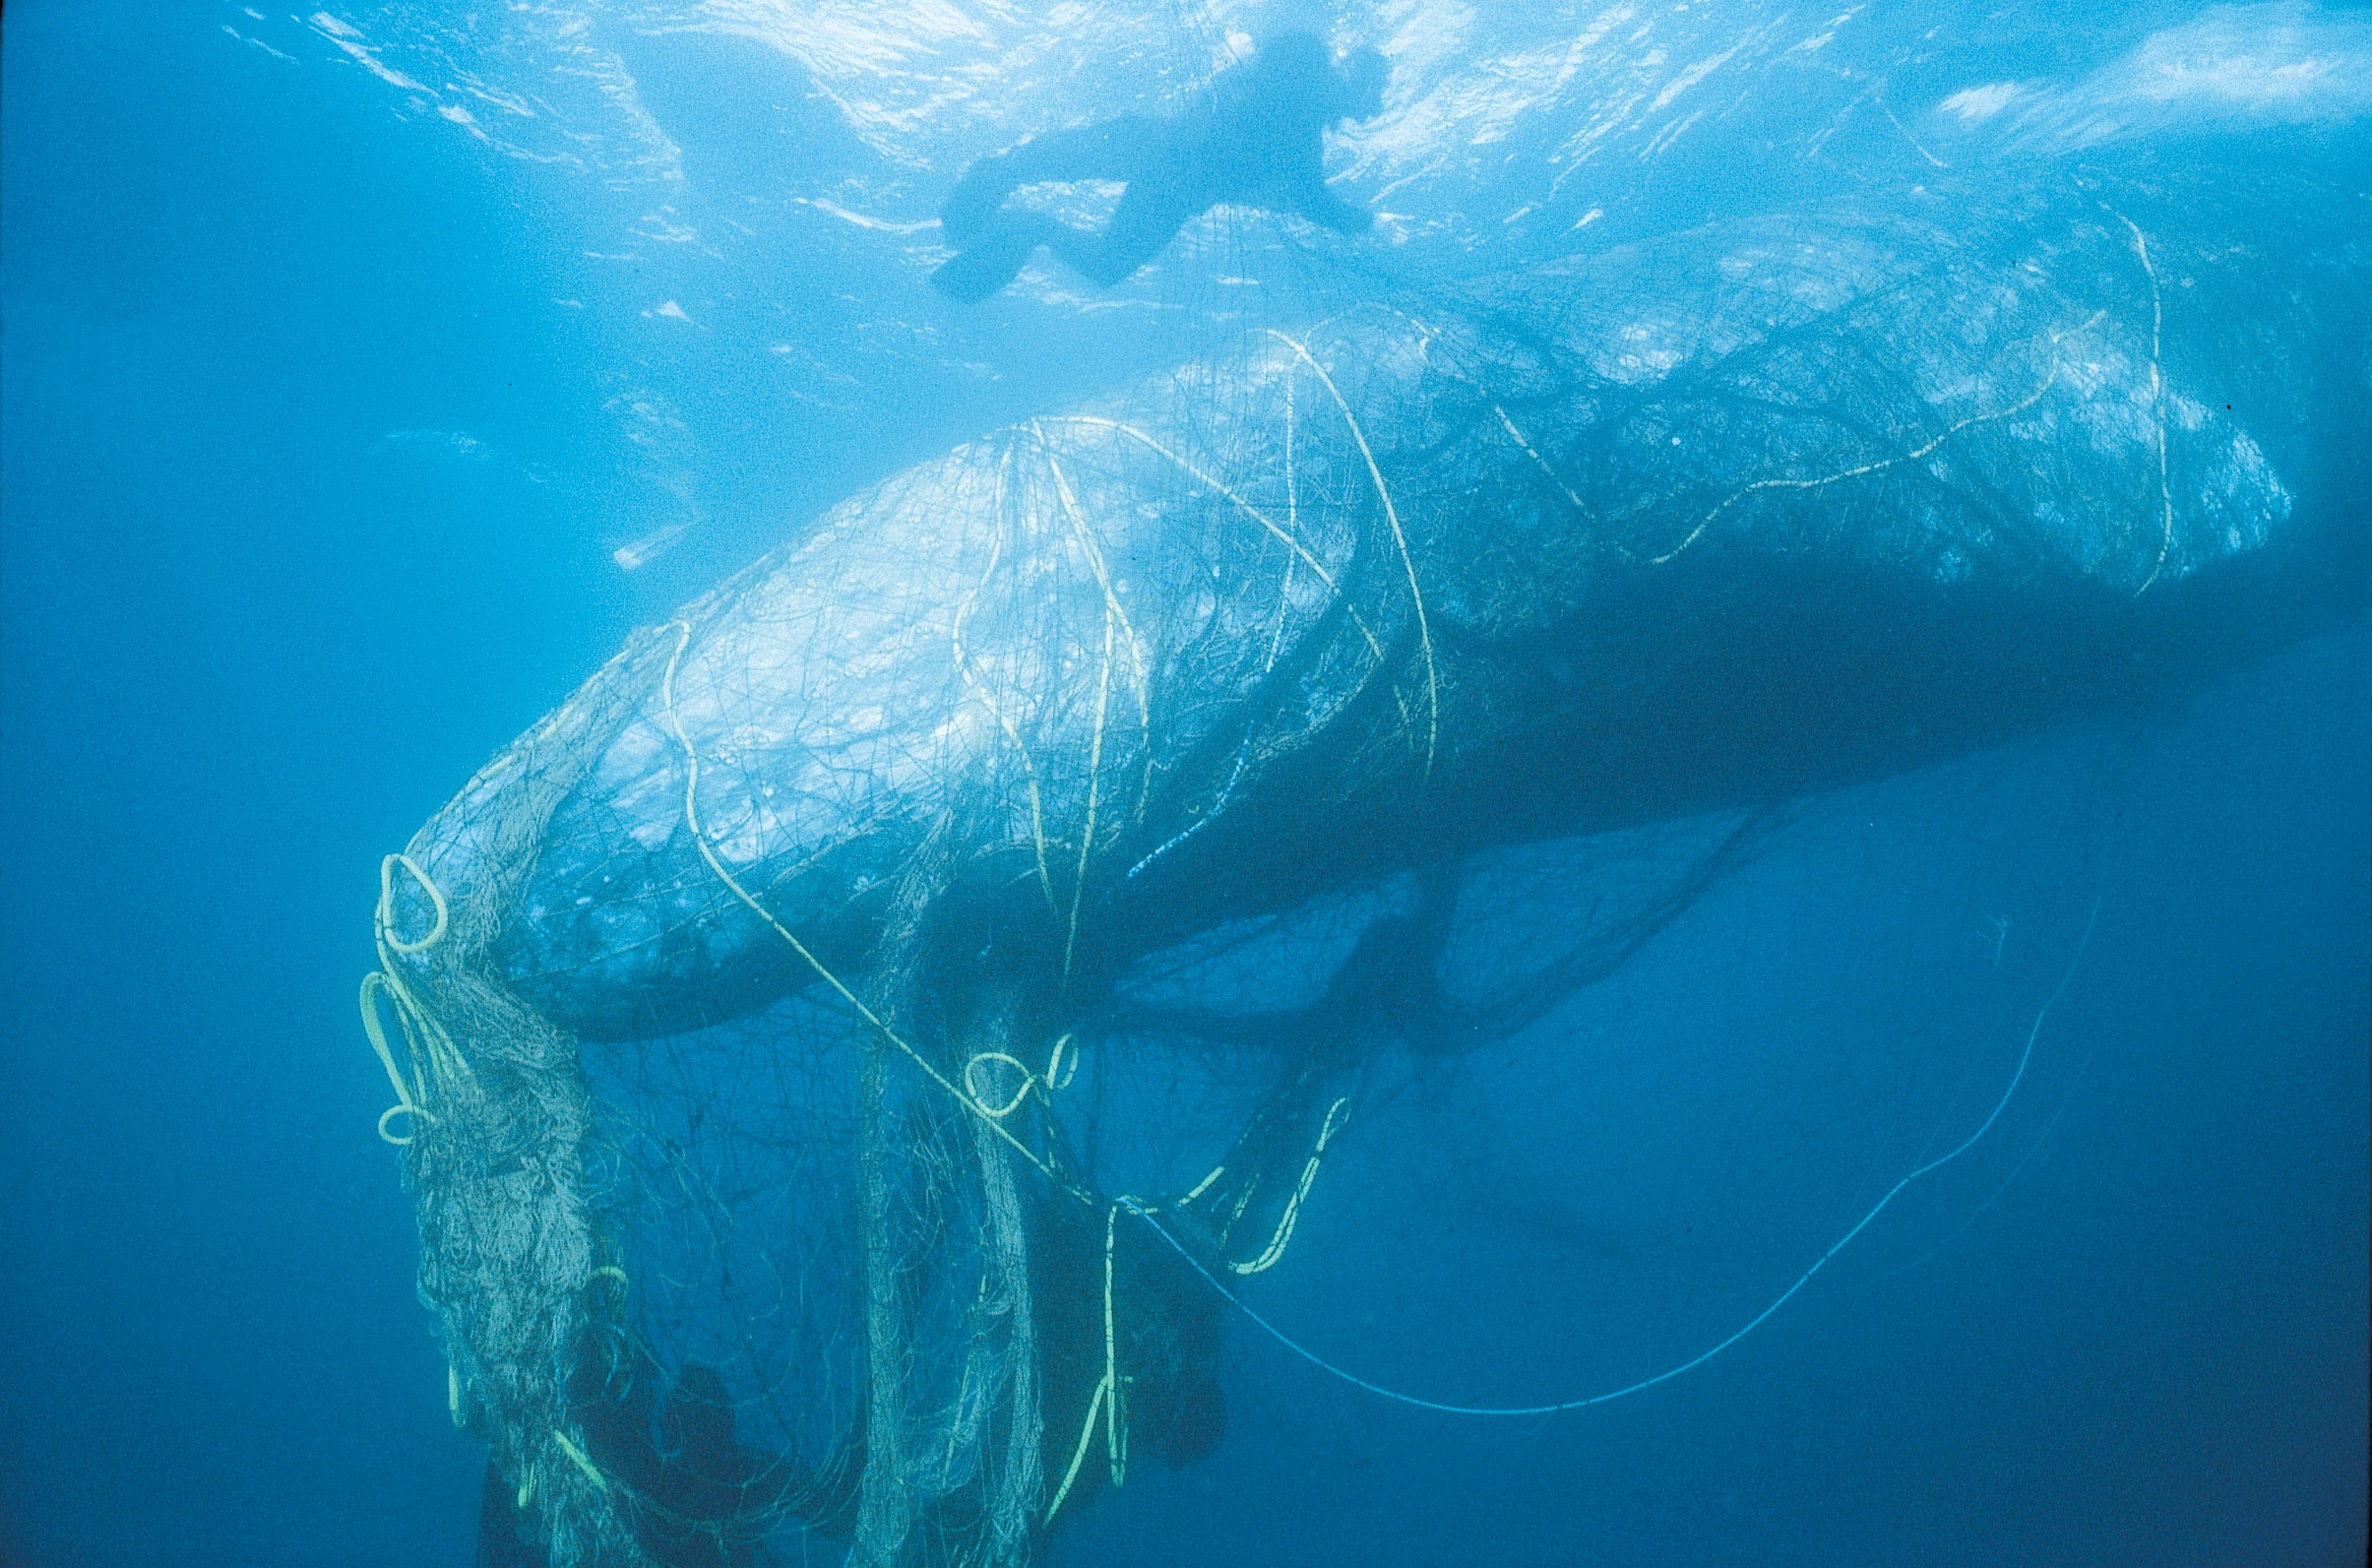 Gray whale entangled in netting (c) BobTalbot, via Monofilament Recovery & Recycling Program